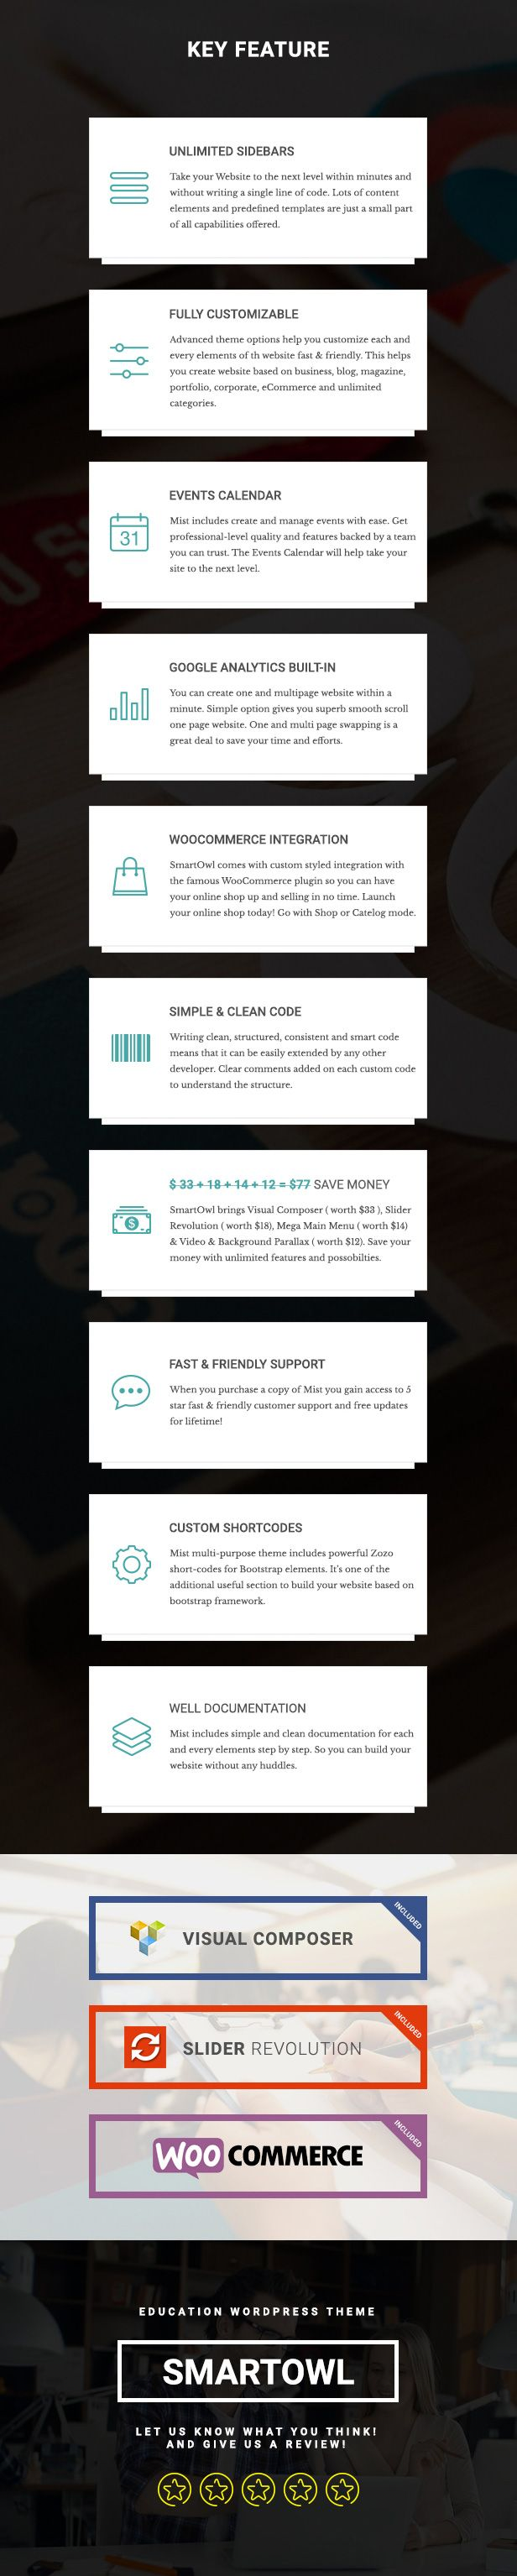 LMS / Course / eLearning / Education / Events / School / University / Academy WordPress Theme by modeltheme